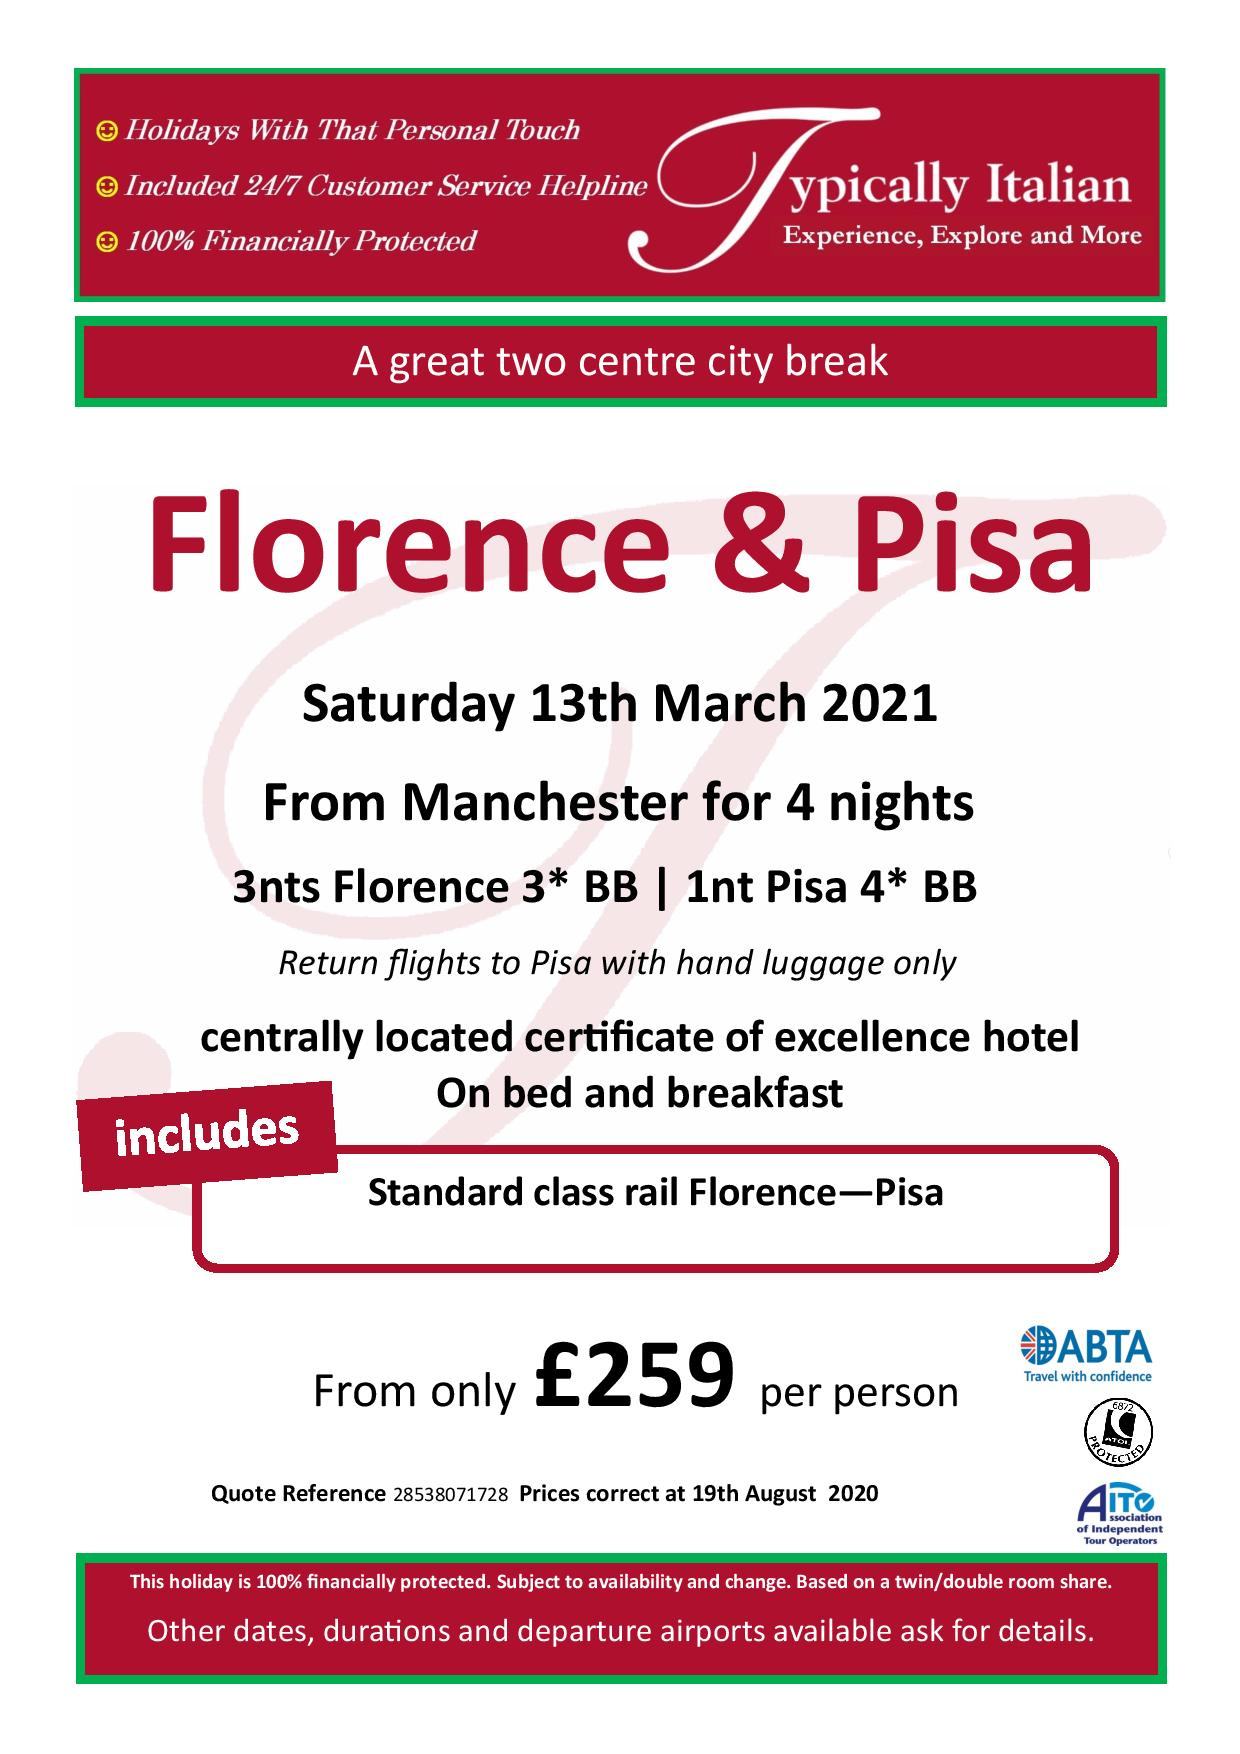 Florence & Pisa Manchester 13March 2021